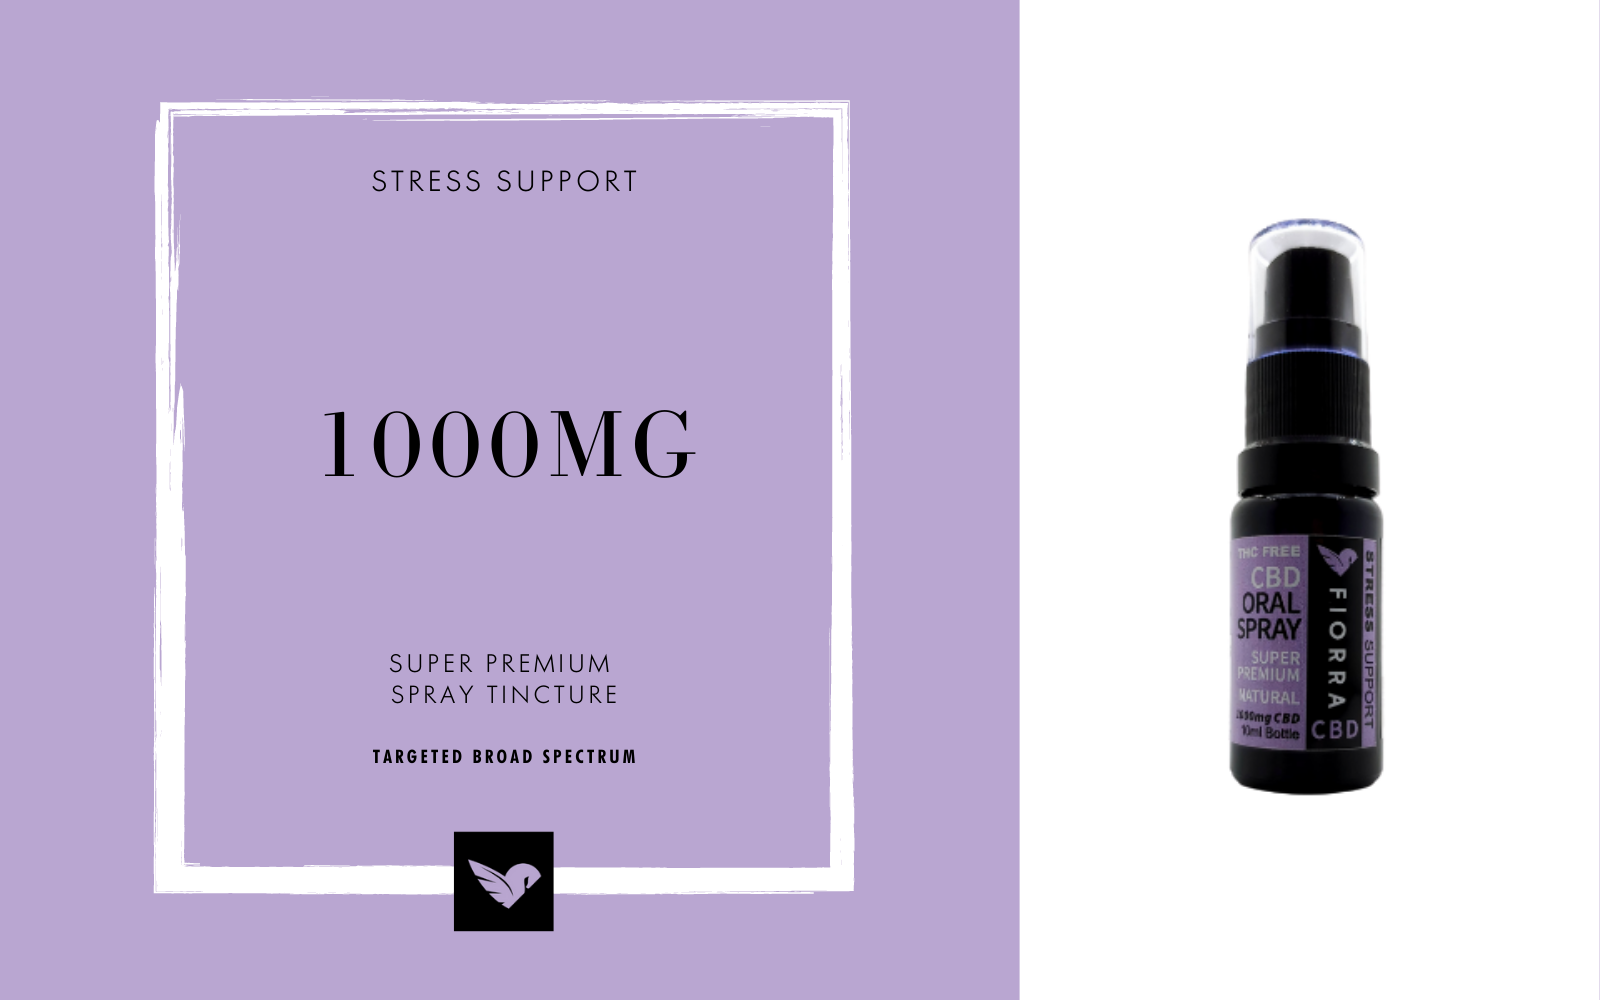 Super Premium CBD Oil for Stress and Sleep | Spray Tincture